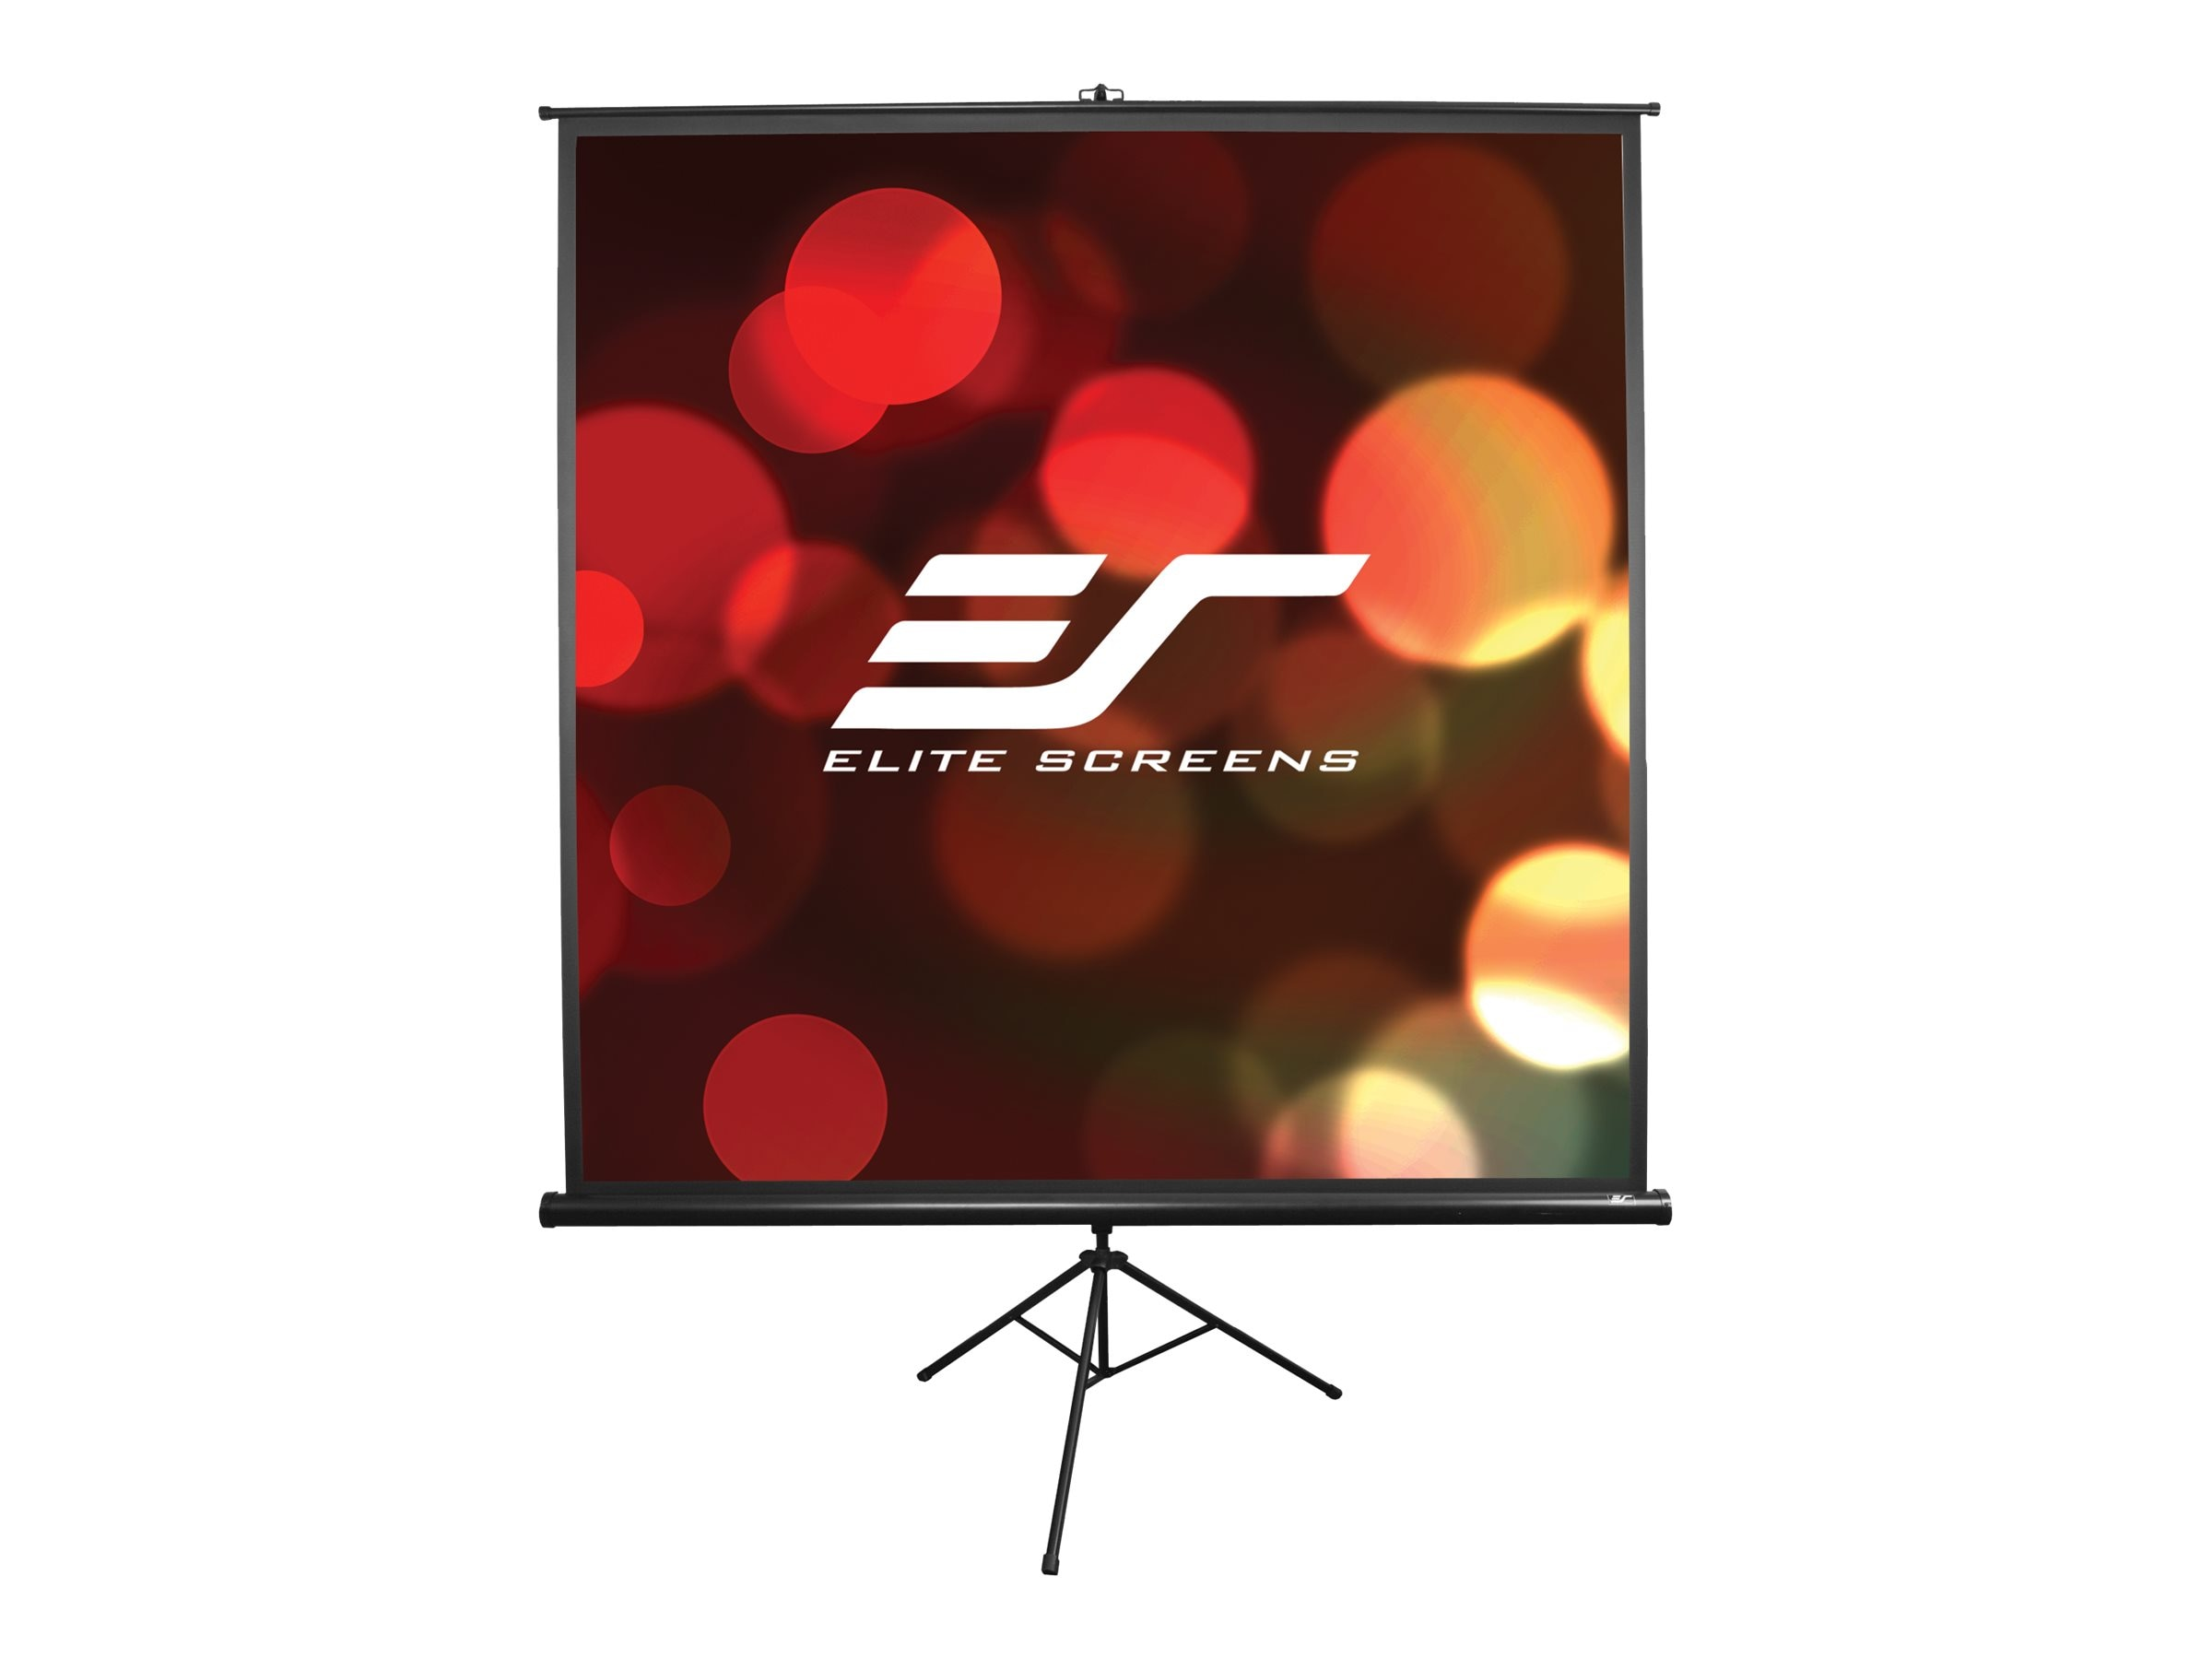 Elite Cinema Tripod Projection Screen, MaxWhite, 16:9, 100in, T100UWH, 9096395, Projector Screens